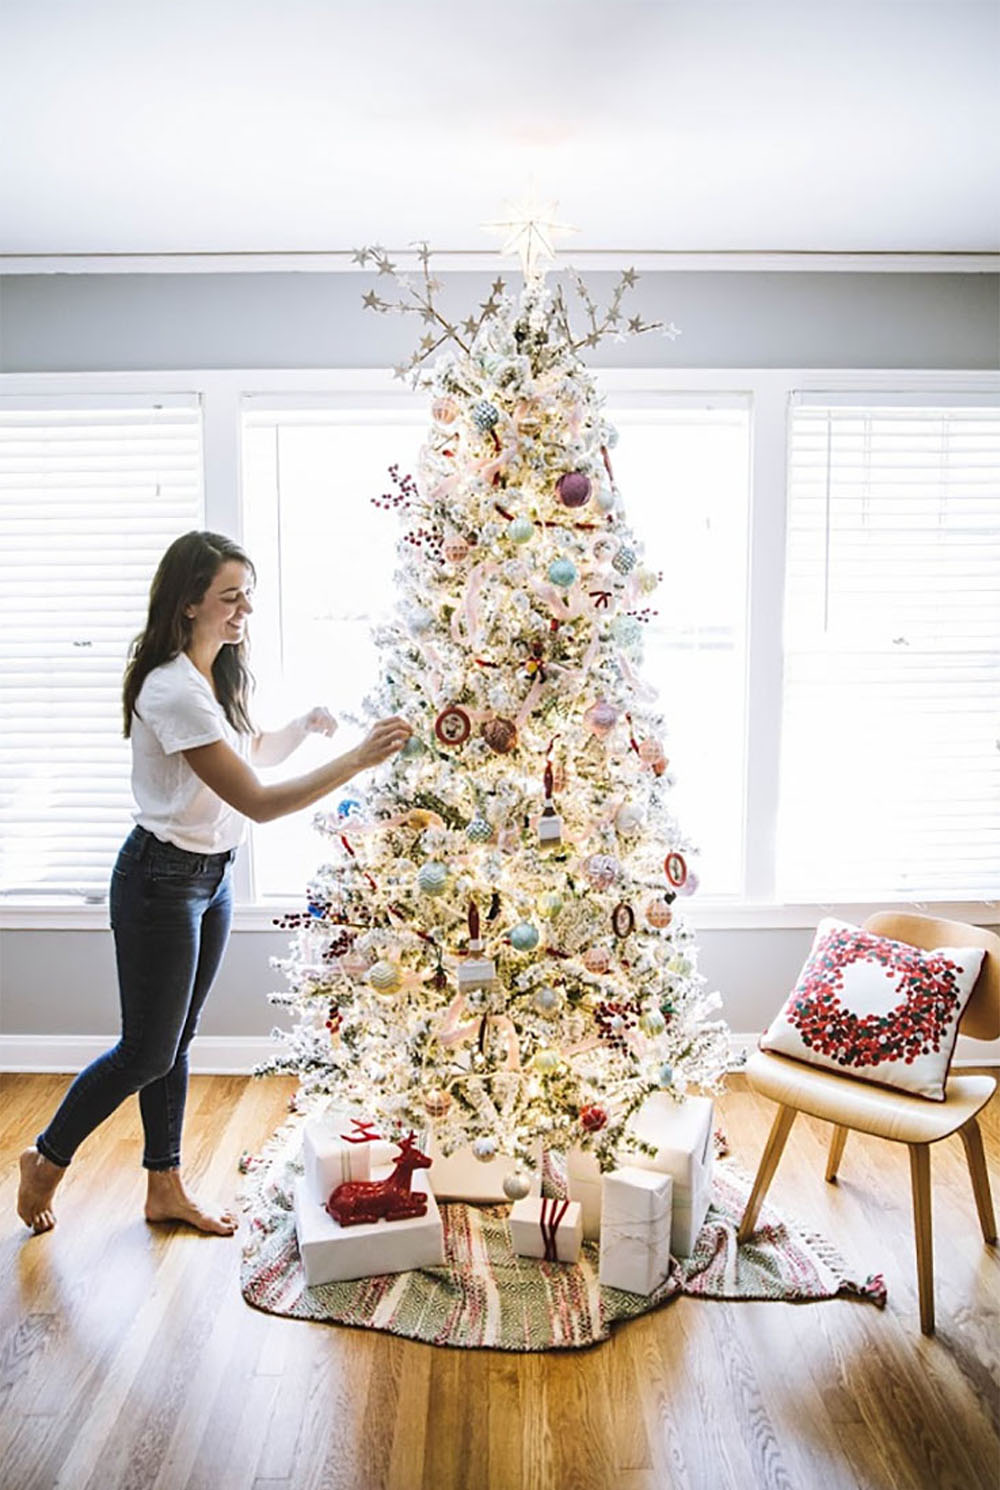 A woman decorating a Christmas Tree.